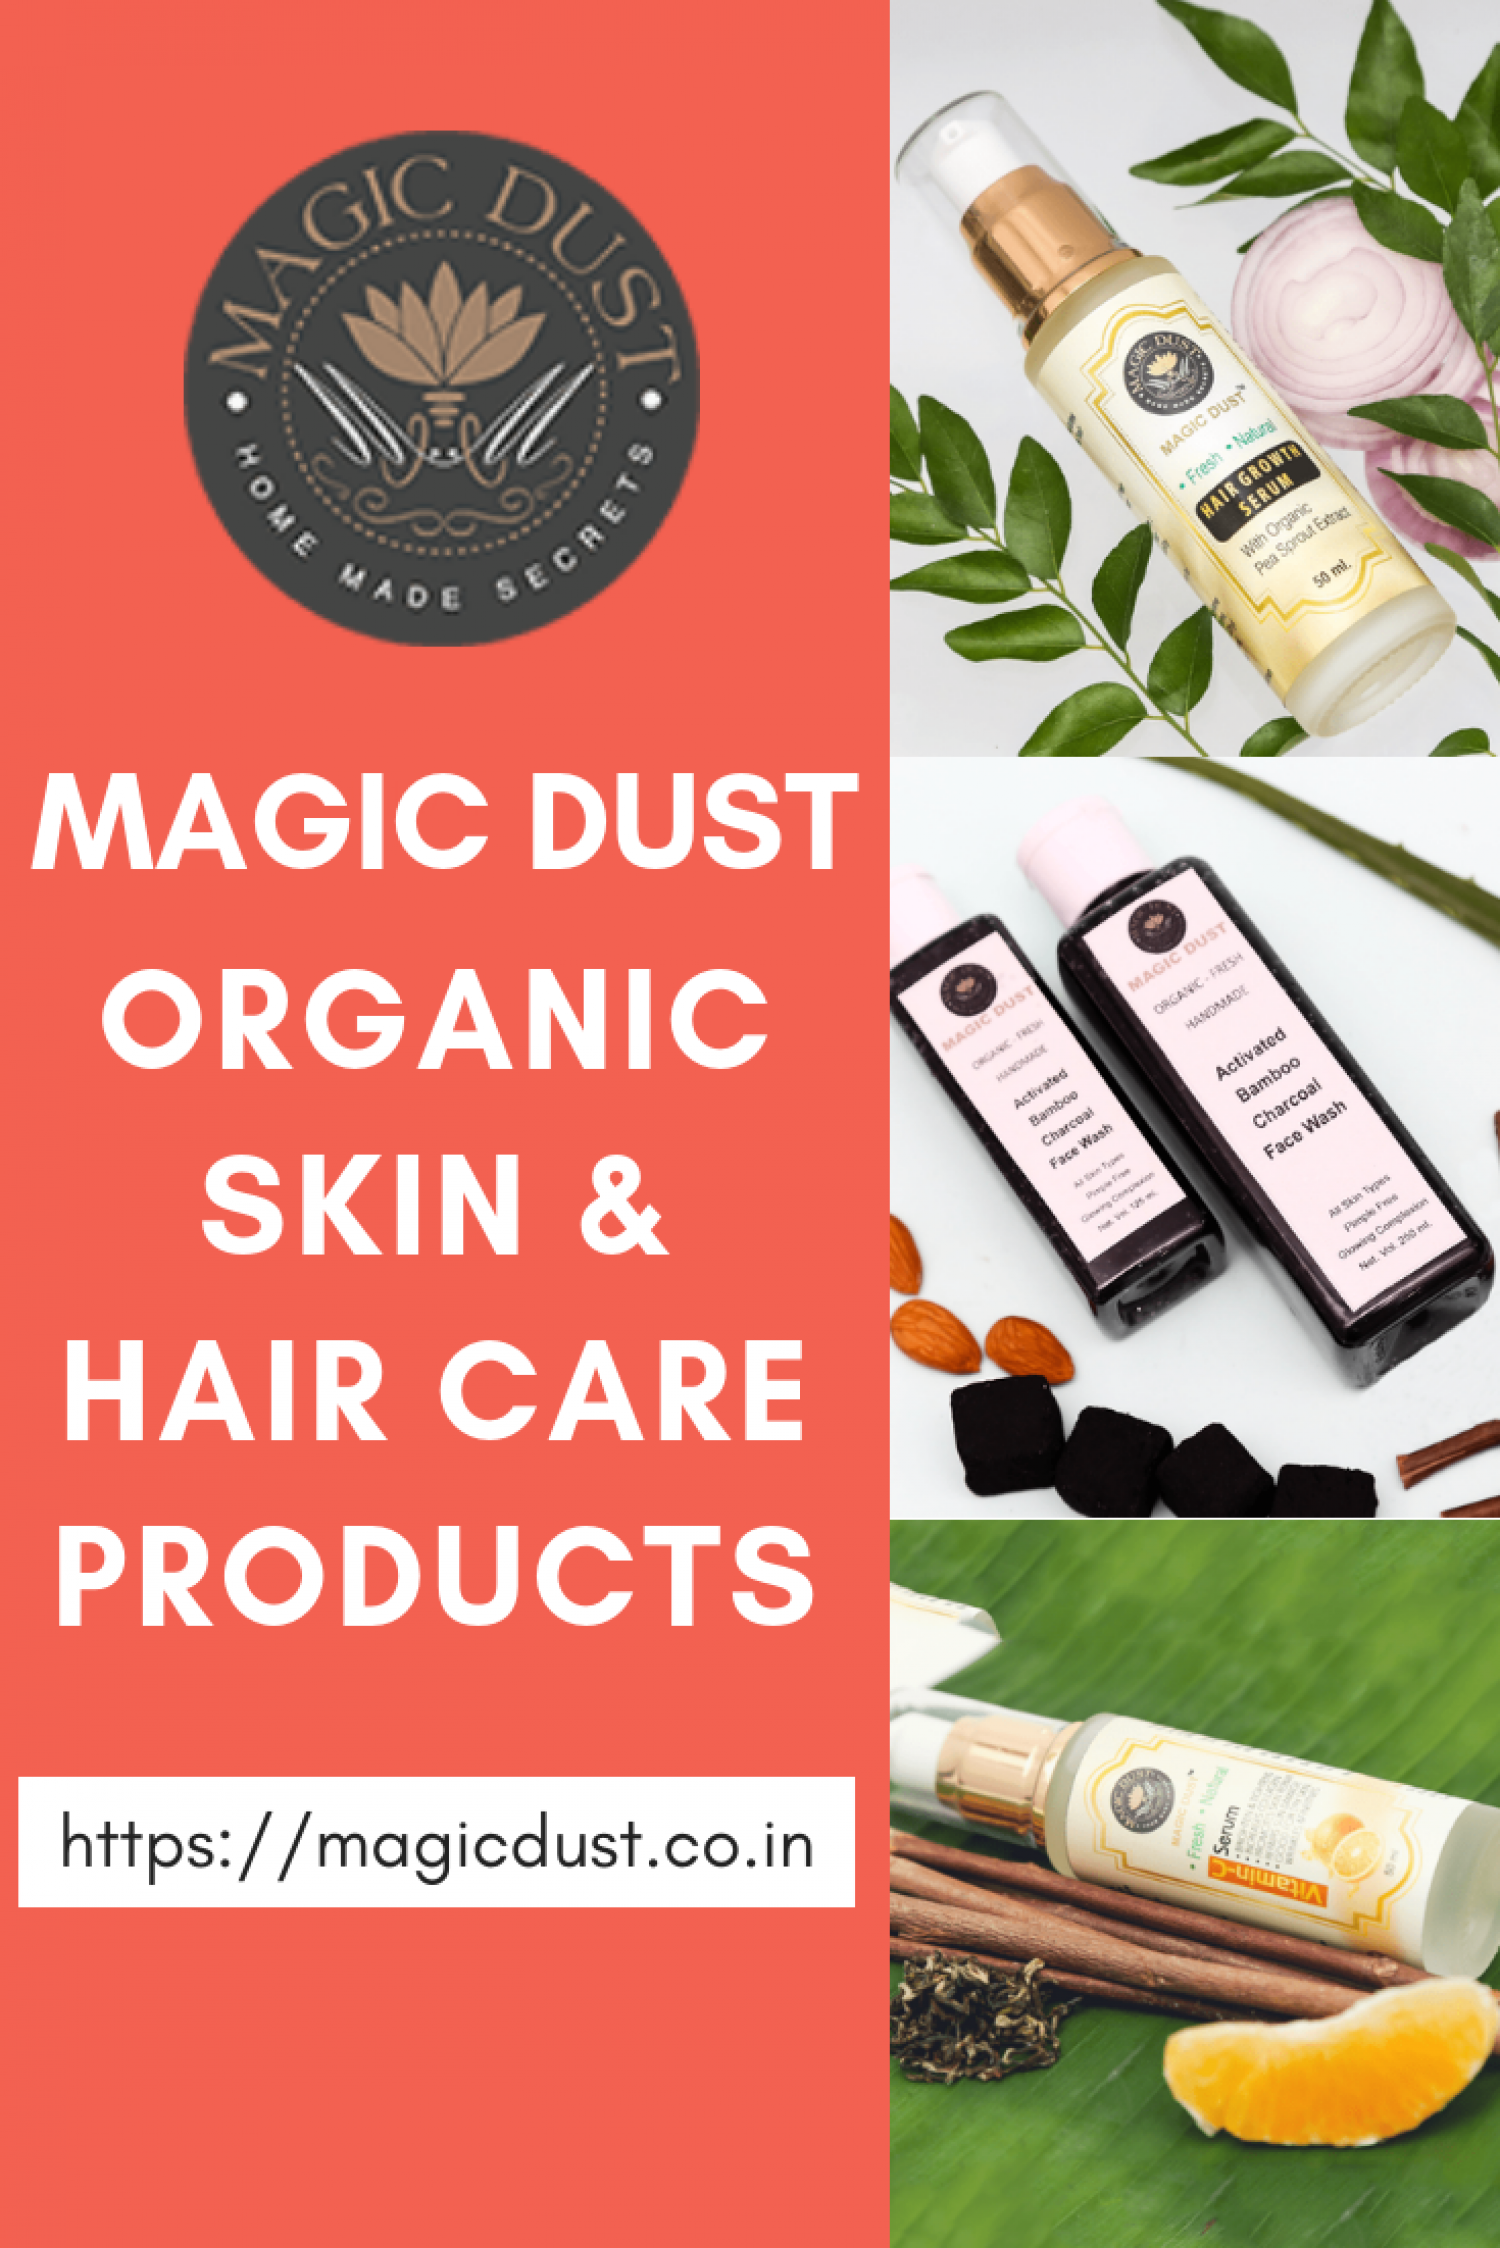 Magic Dust- Best Organic Skin & Hair Care Products Online in India Infographic